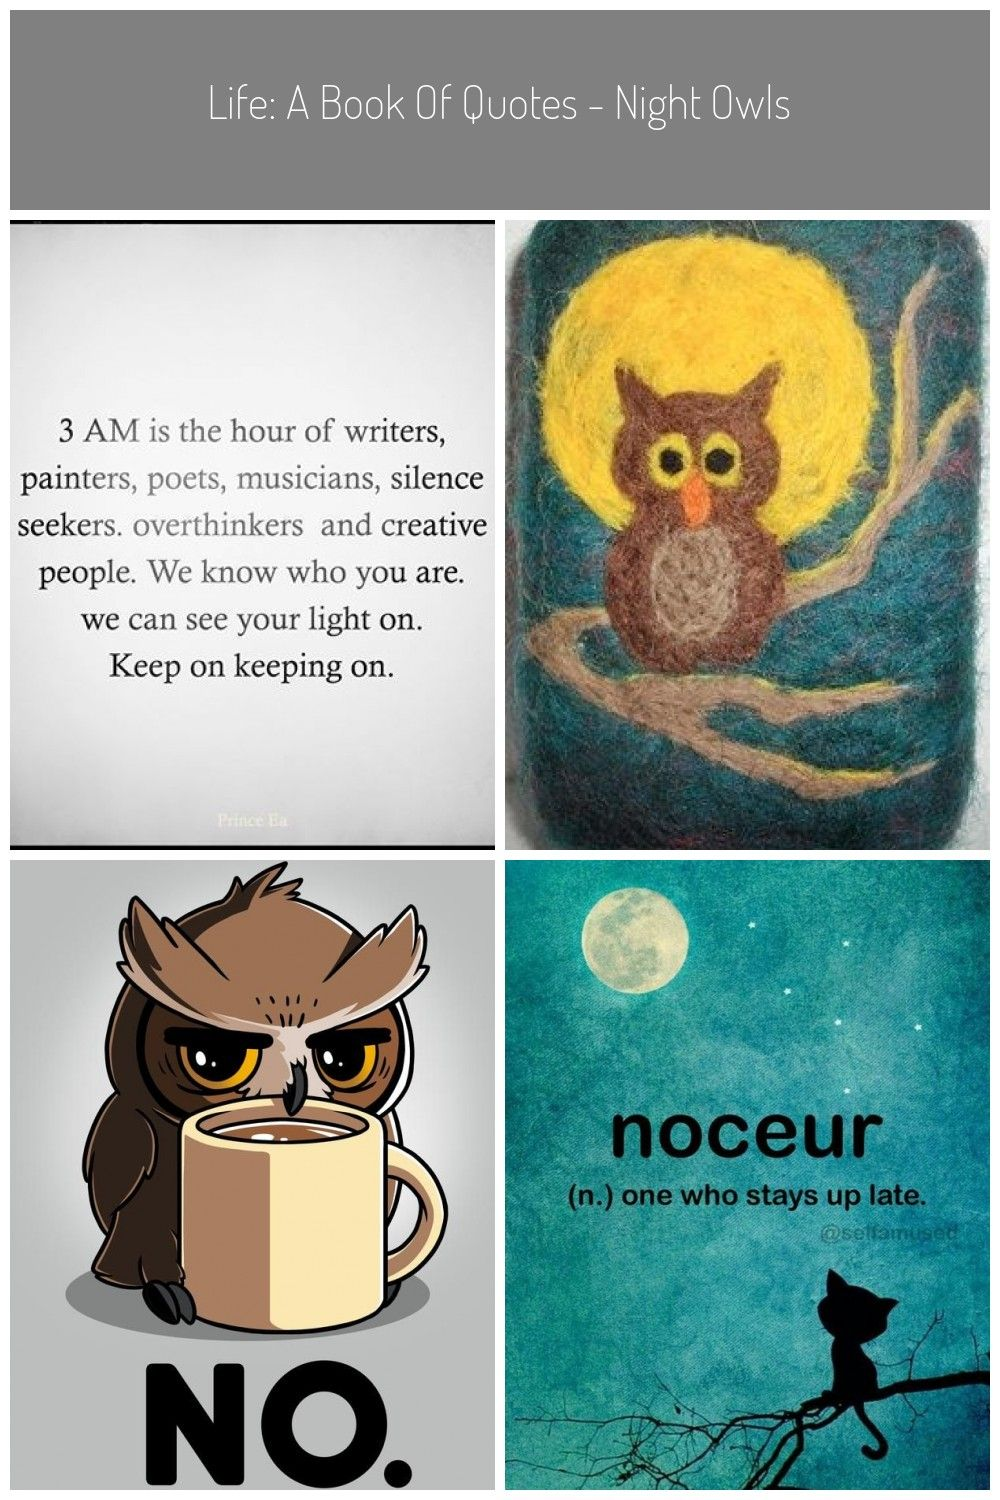 Life A Book Of Quotes Night Owls Wattpad Night Owl Life A Book Of Quotes Night Owls Owl Facts Owl Night Owl Quotes